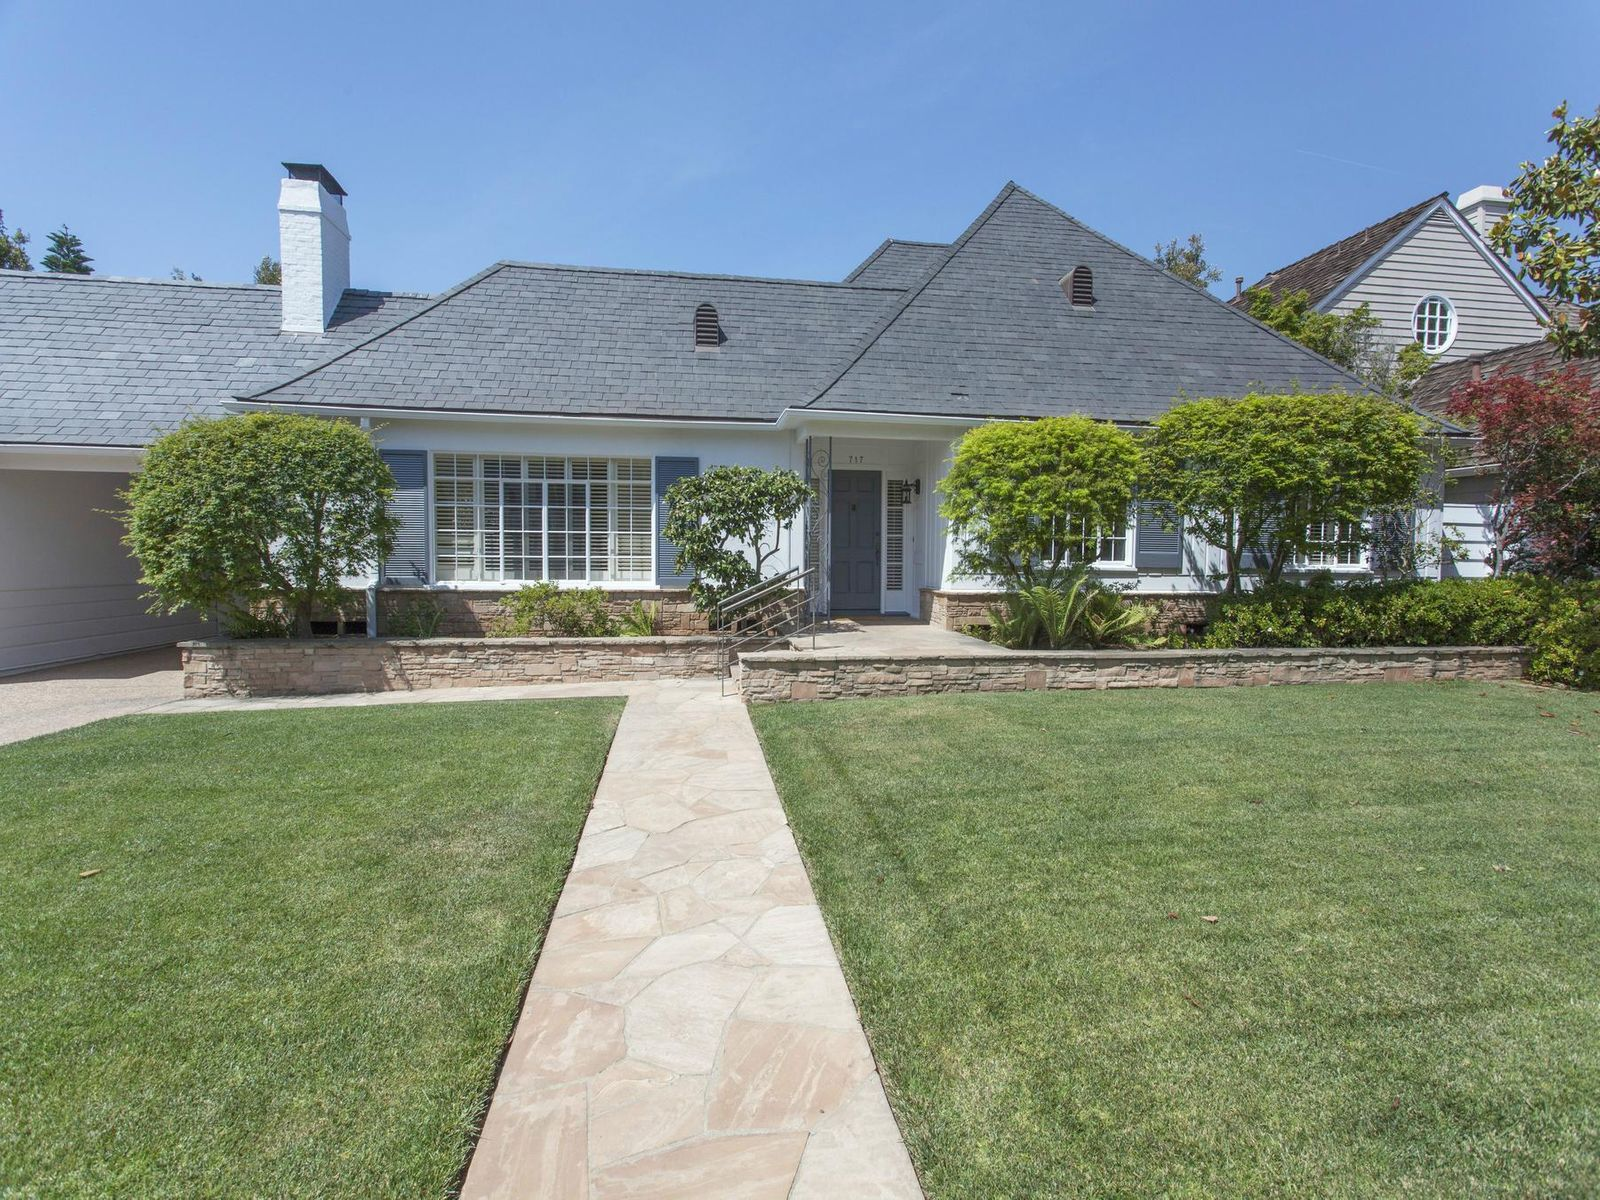 Huntington Beauty, Pacific Palisades CA Single Family Home - Los Angeles Real Estate